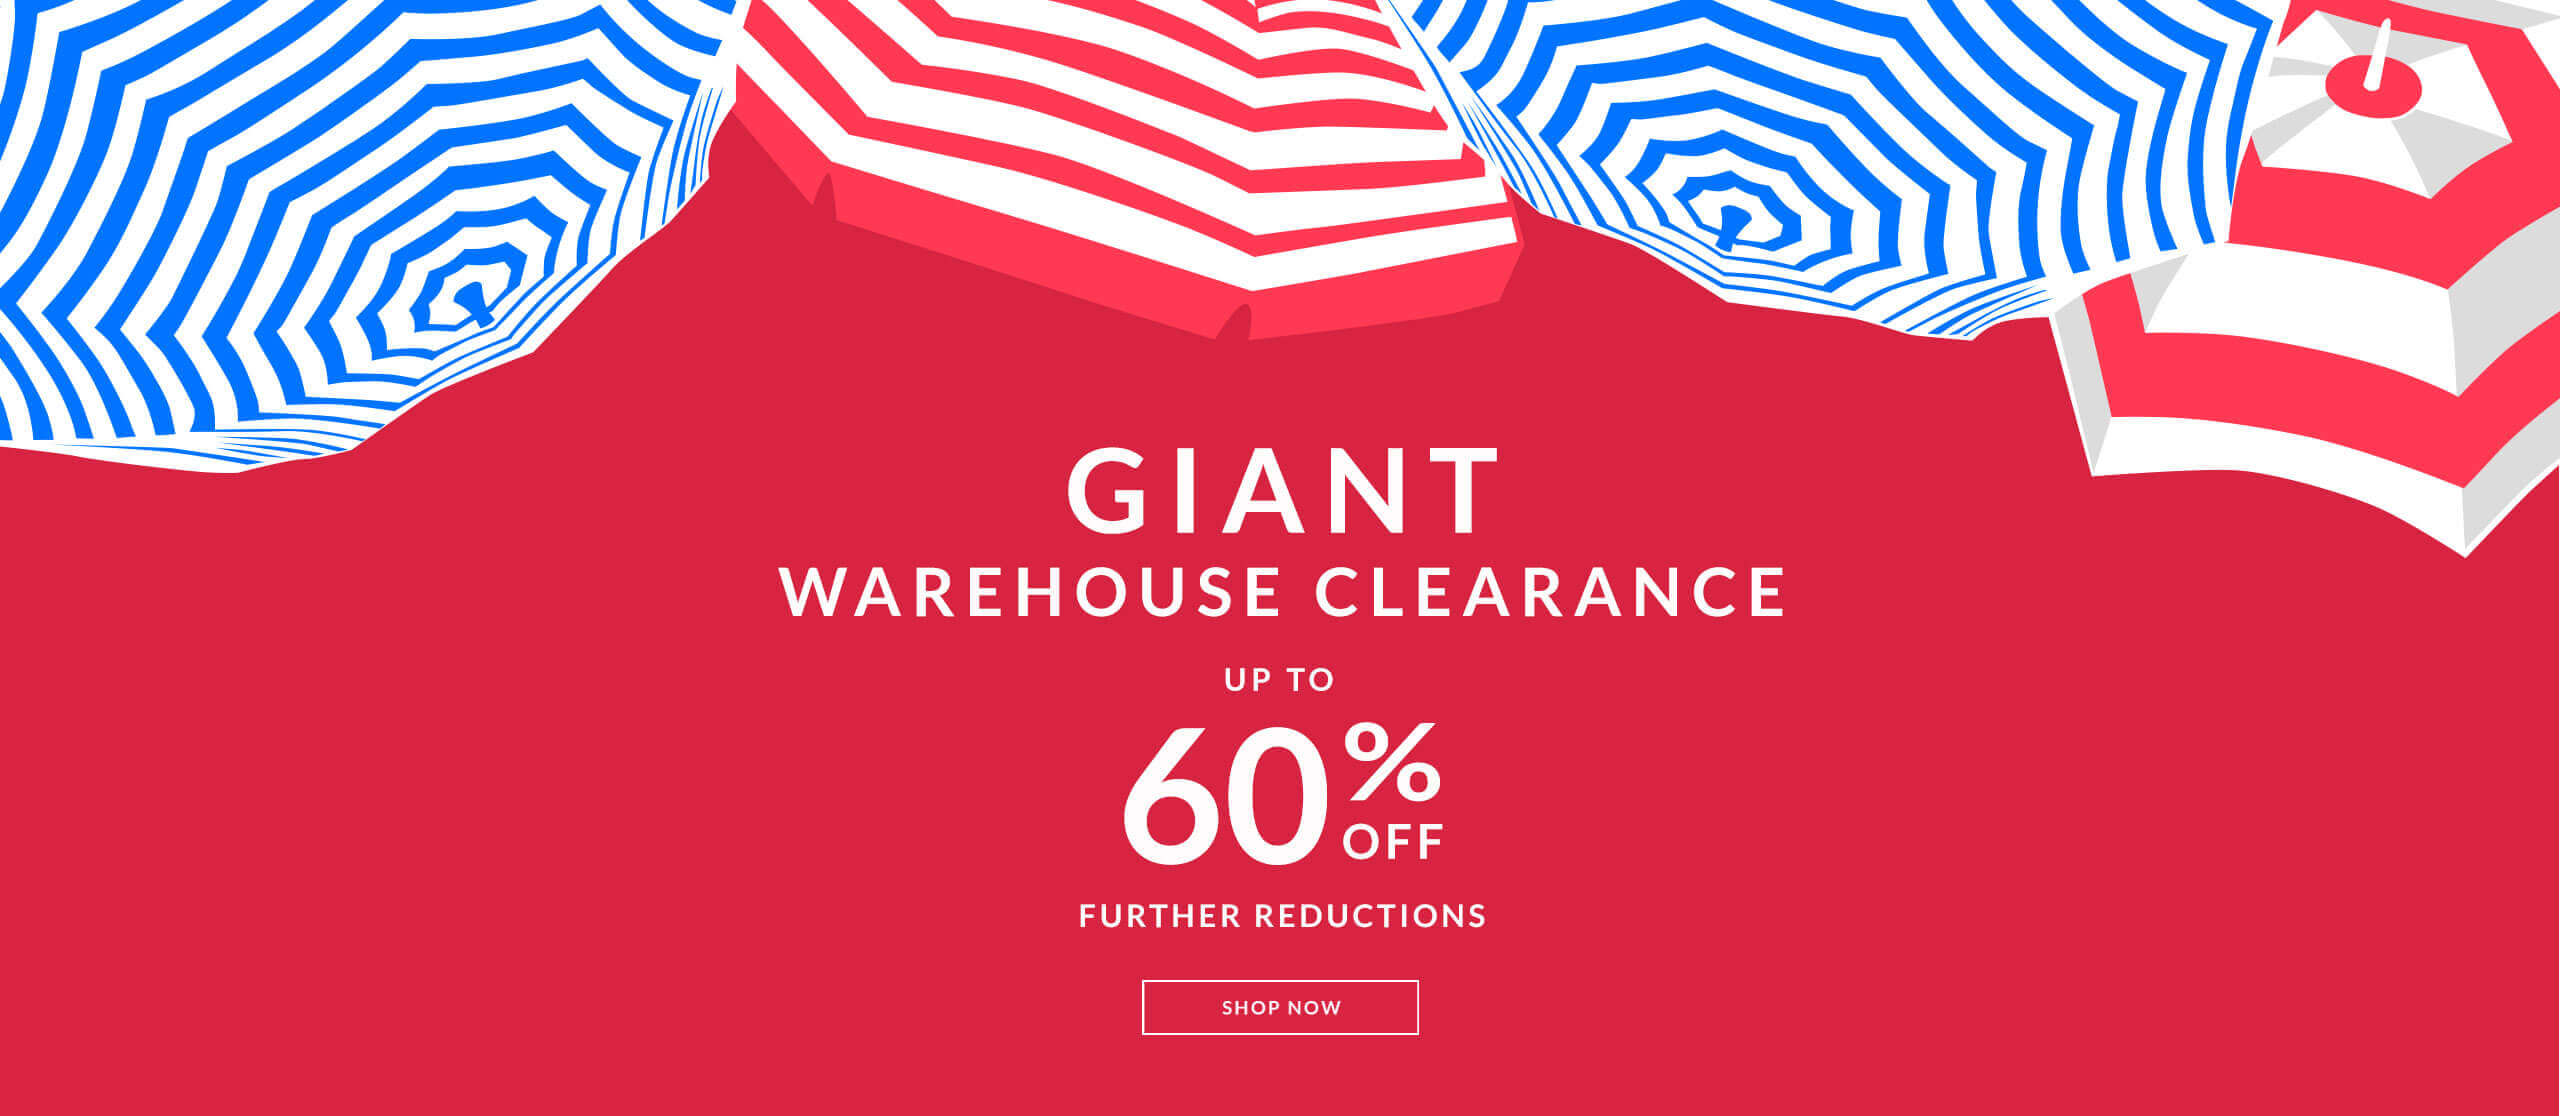 Further reductions of up to 60% in the OSPREY LONDON Giant Warehouse Clearance